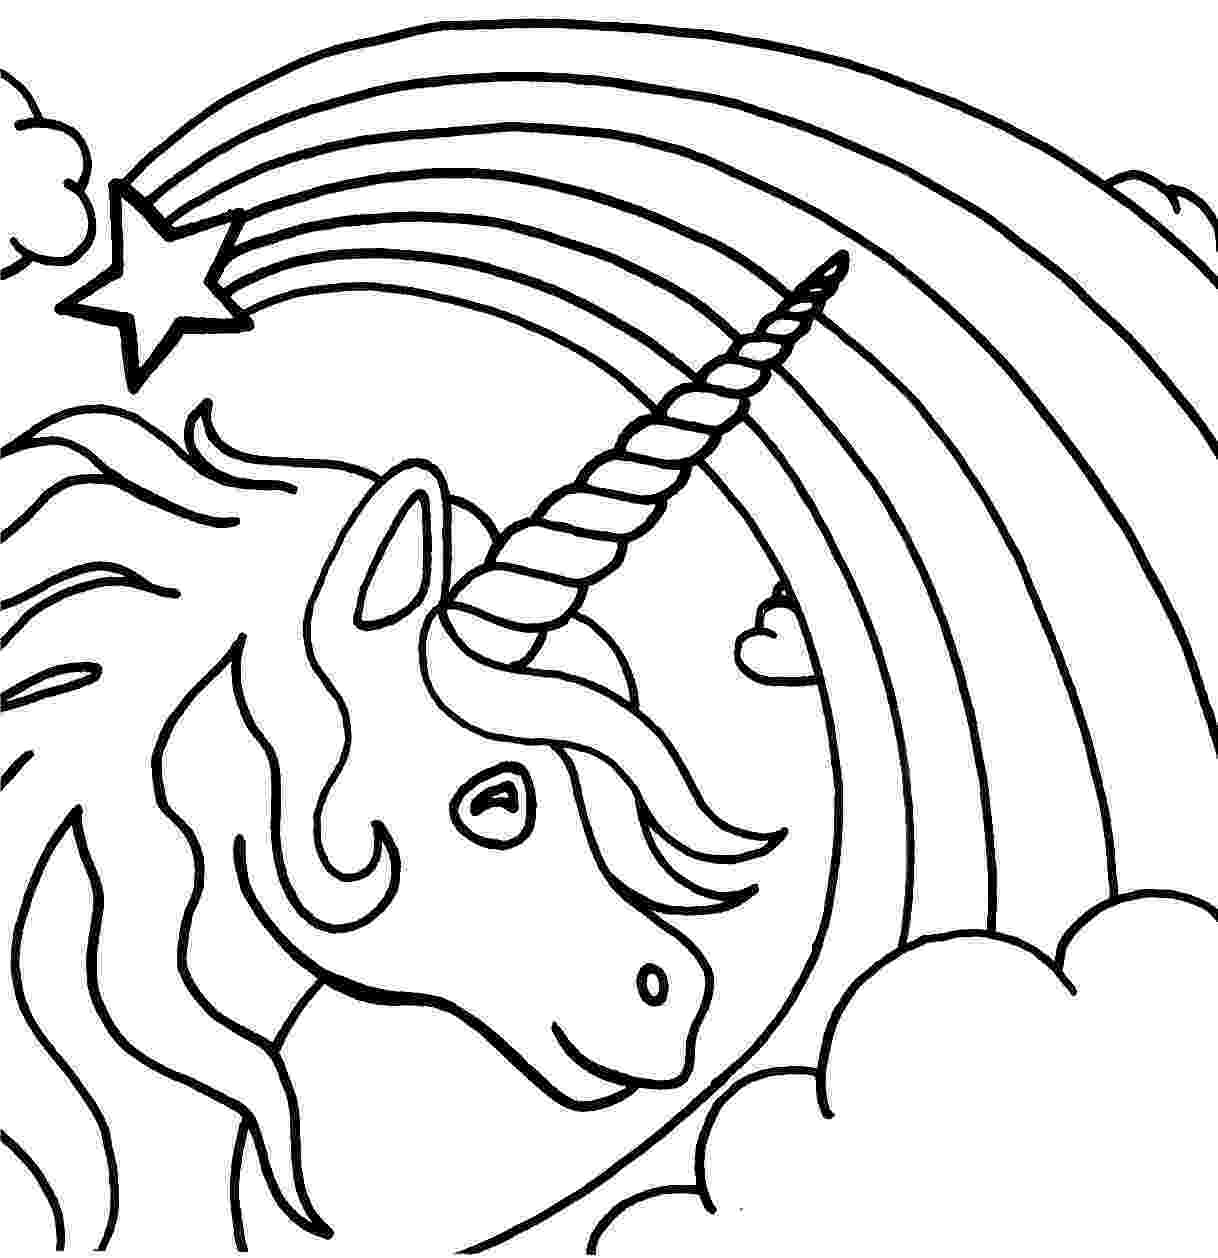 free coloring pages for children new year printable coloring pages free printable kids pages for coloring free children